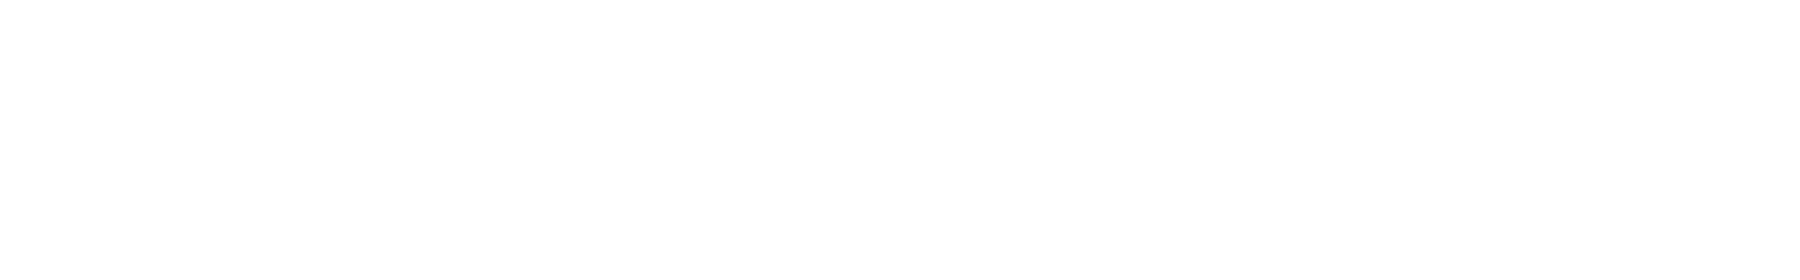 Waves clipart noise. Psy dub sample focus